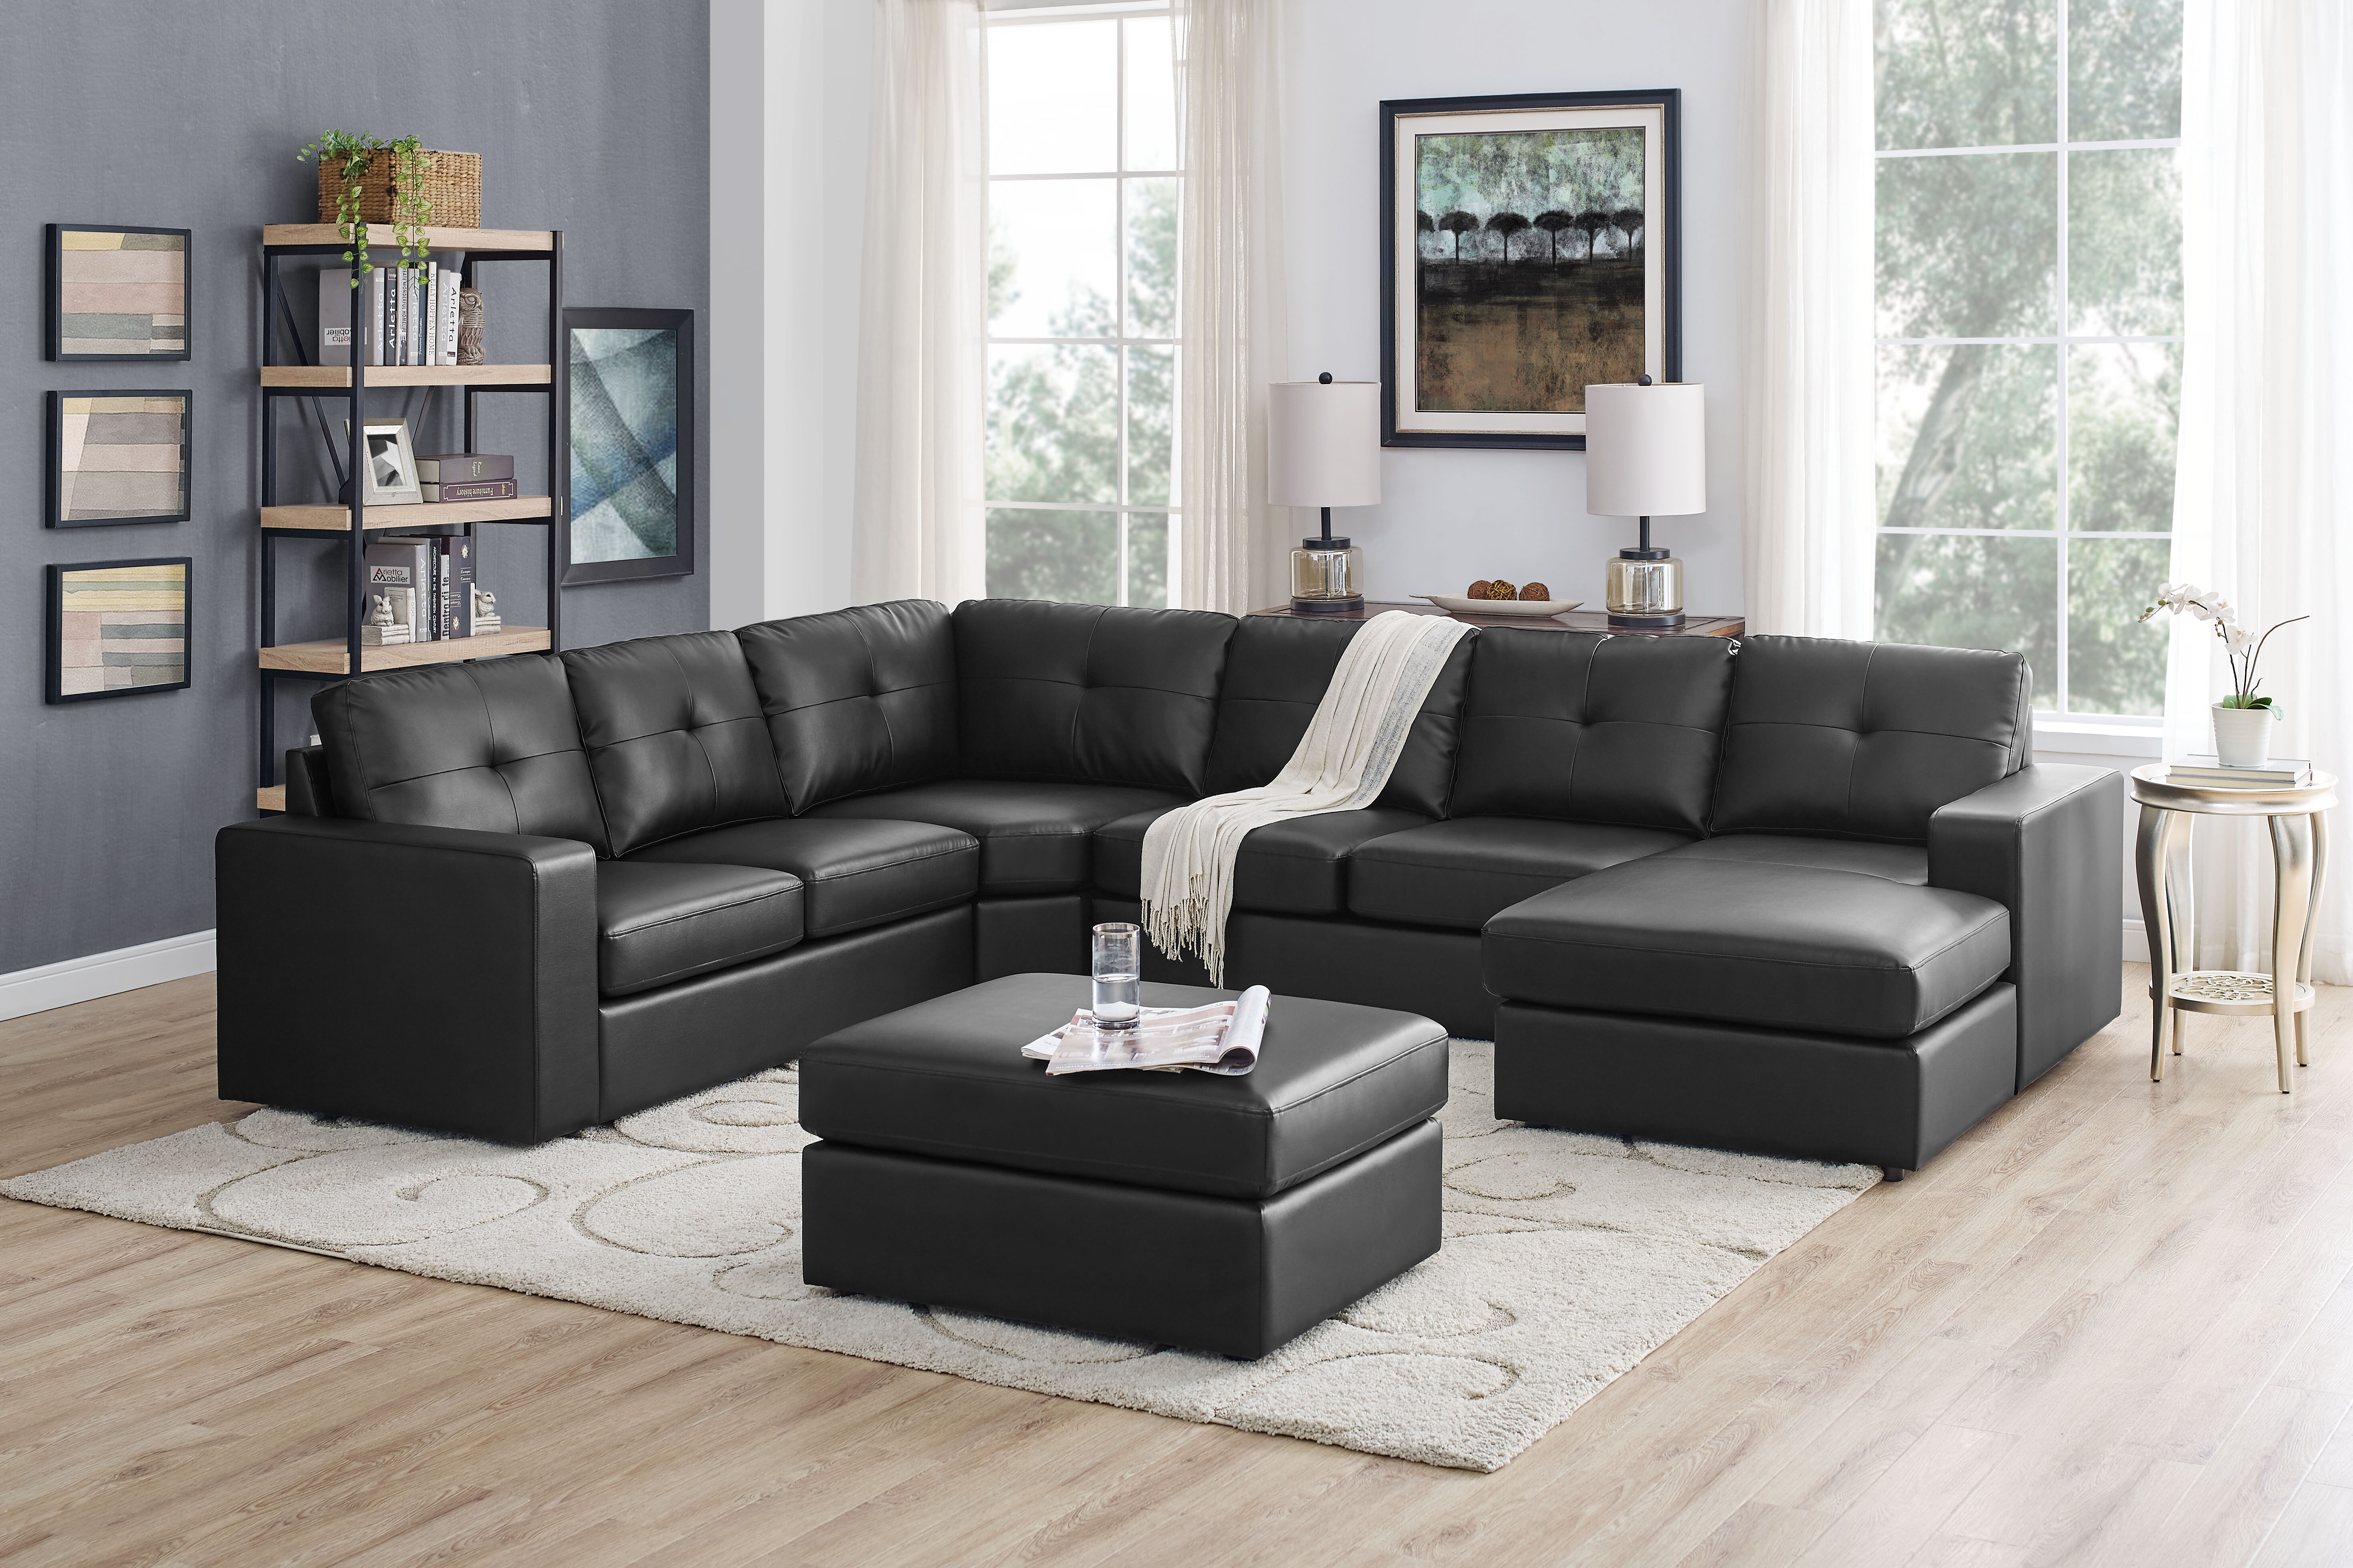 Excellent Auton 5 Seater Right Hand Facing Sectional Sofa With Ottoman Short Links Chair Design For Home Short Linksinfo